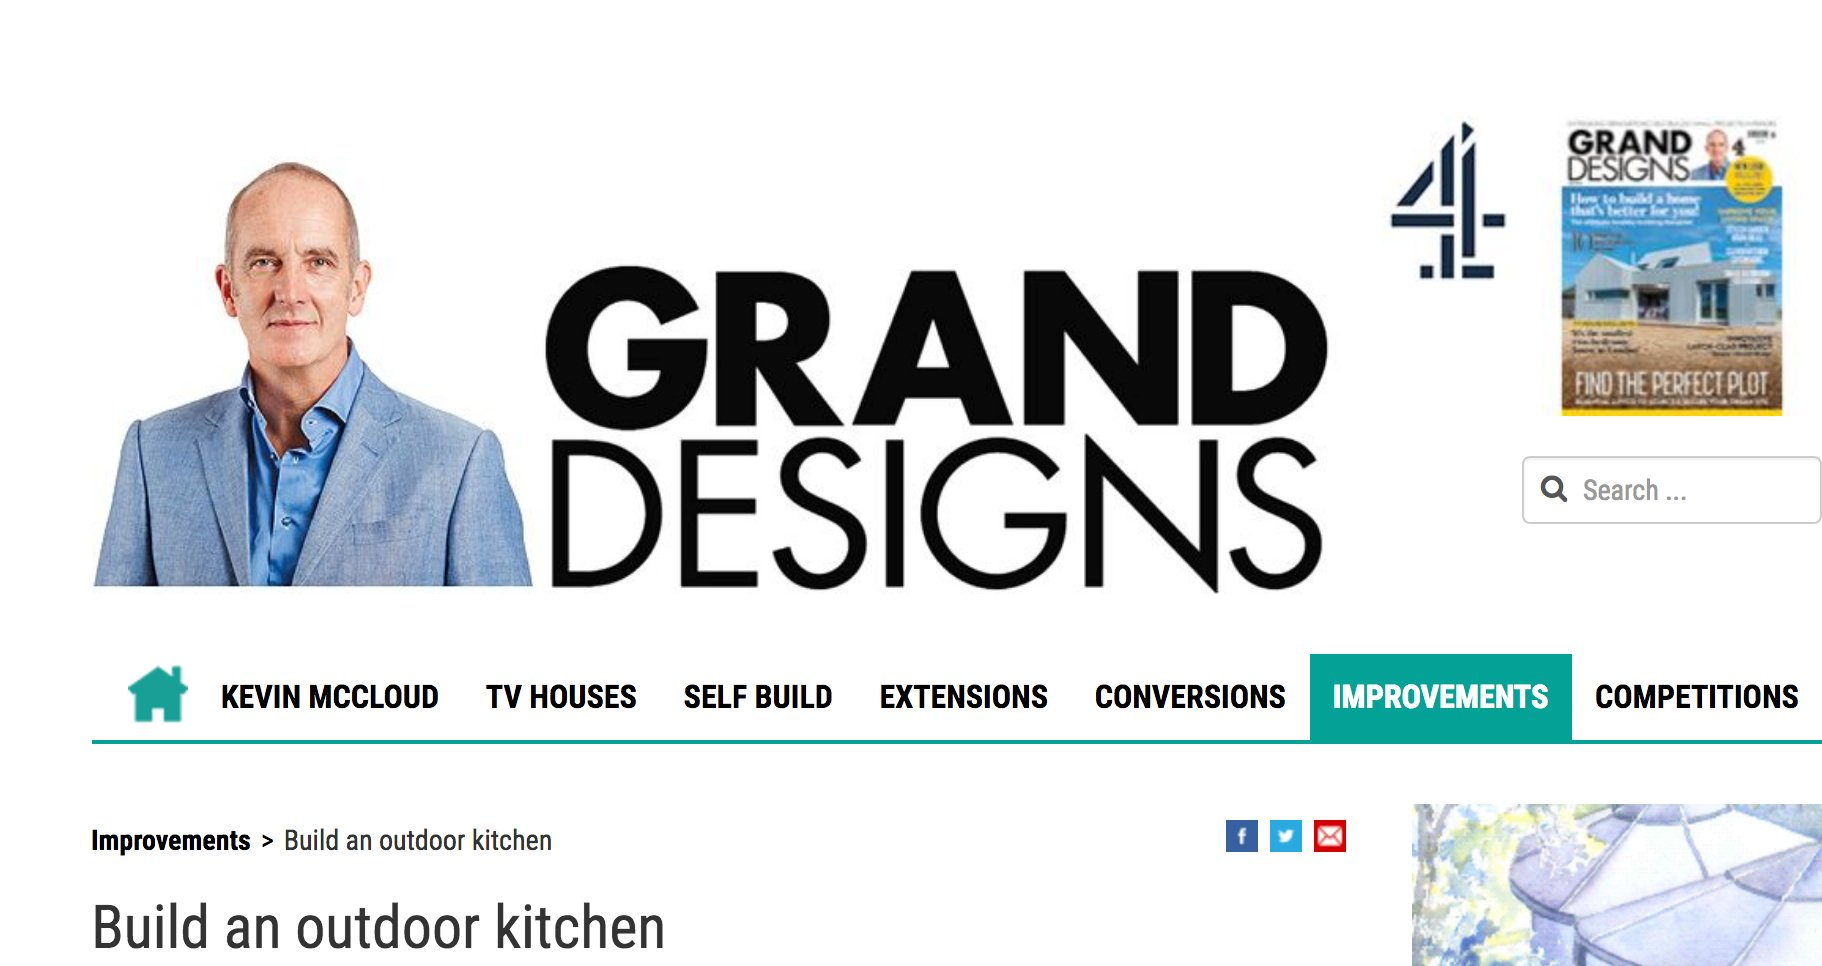 grand designs, magazine, outdoor kitchen